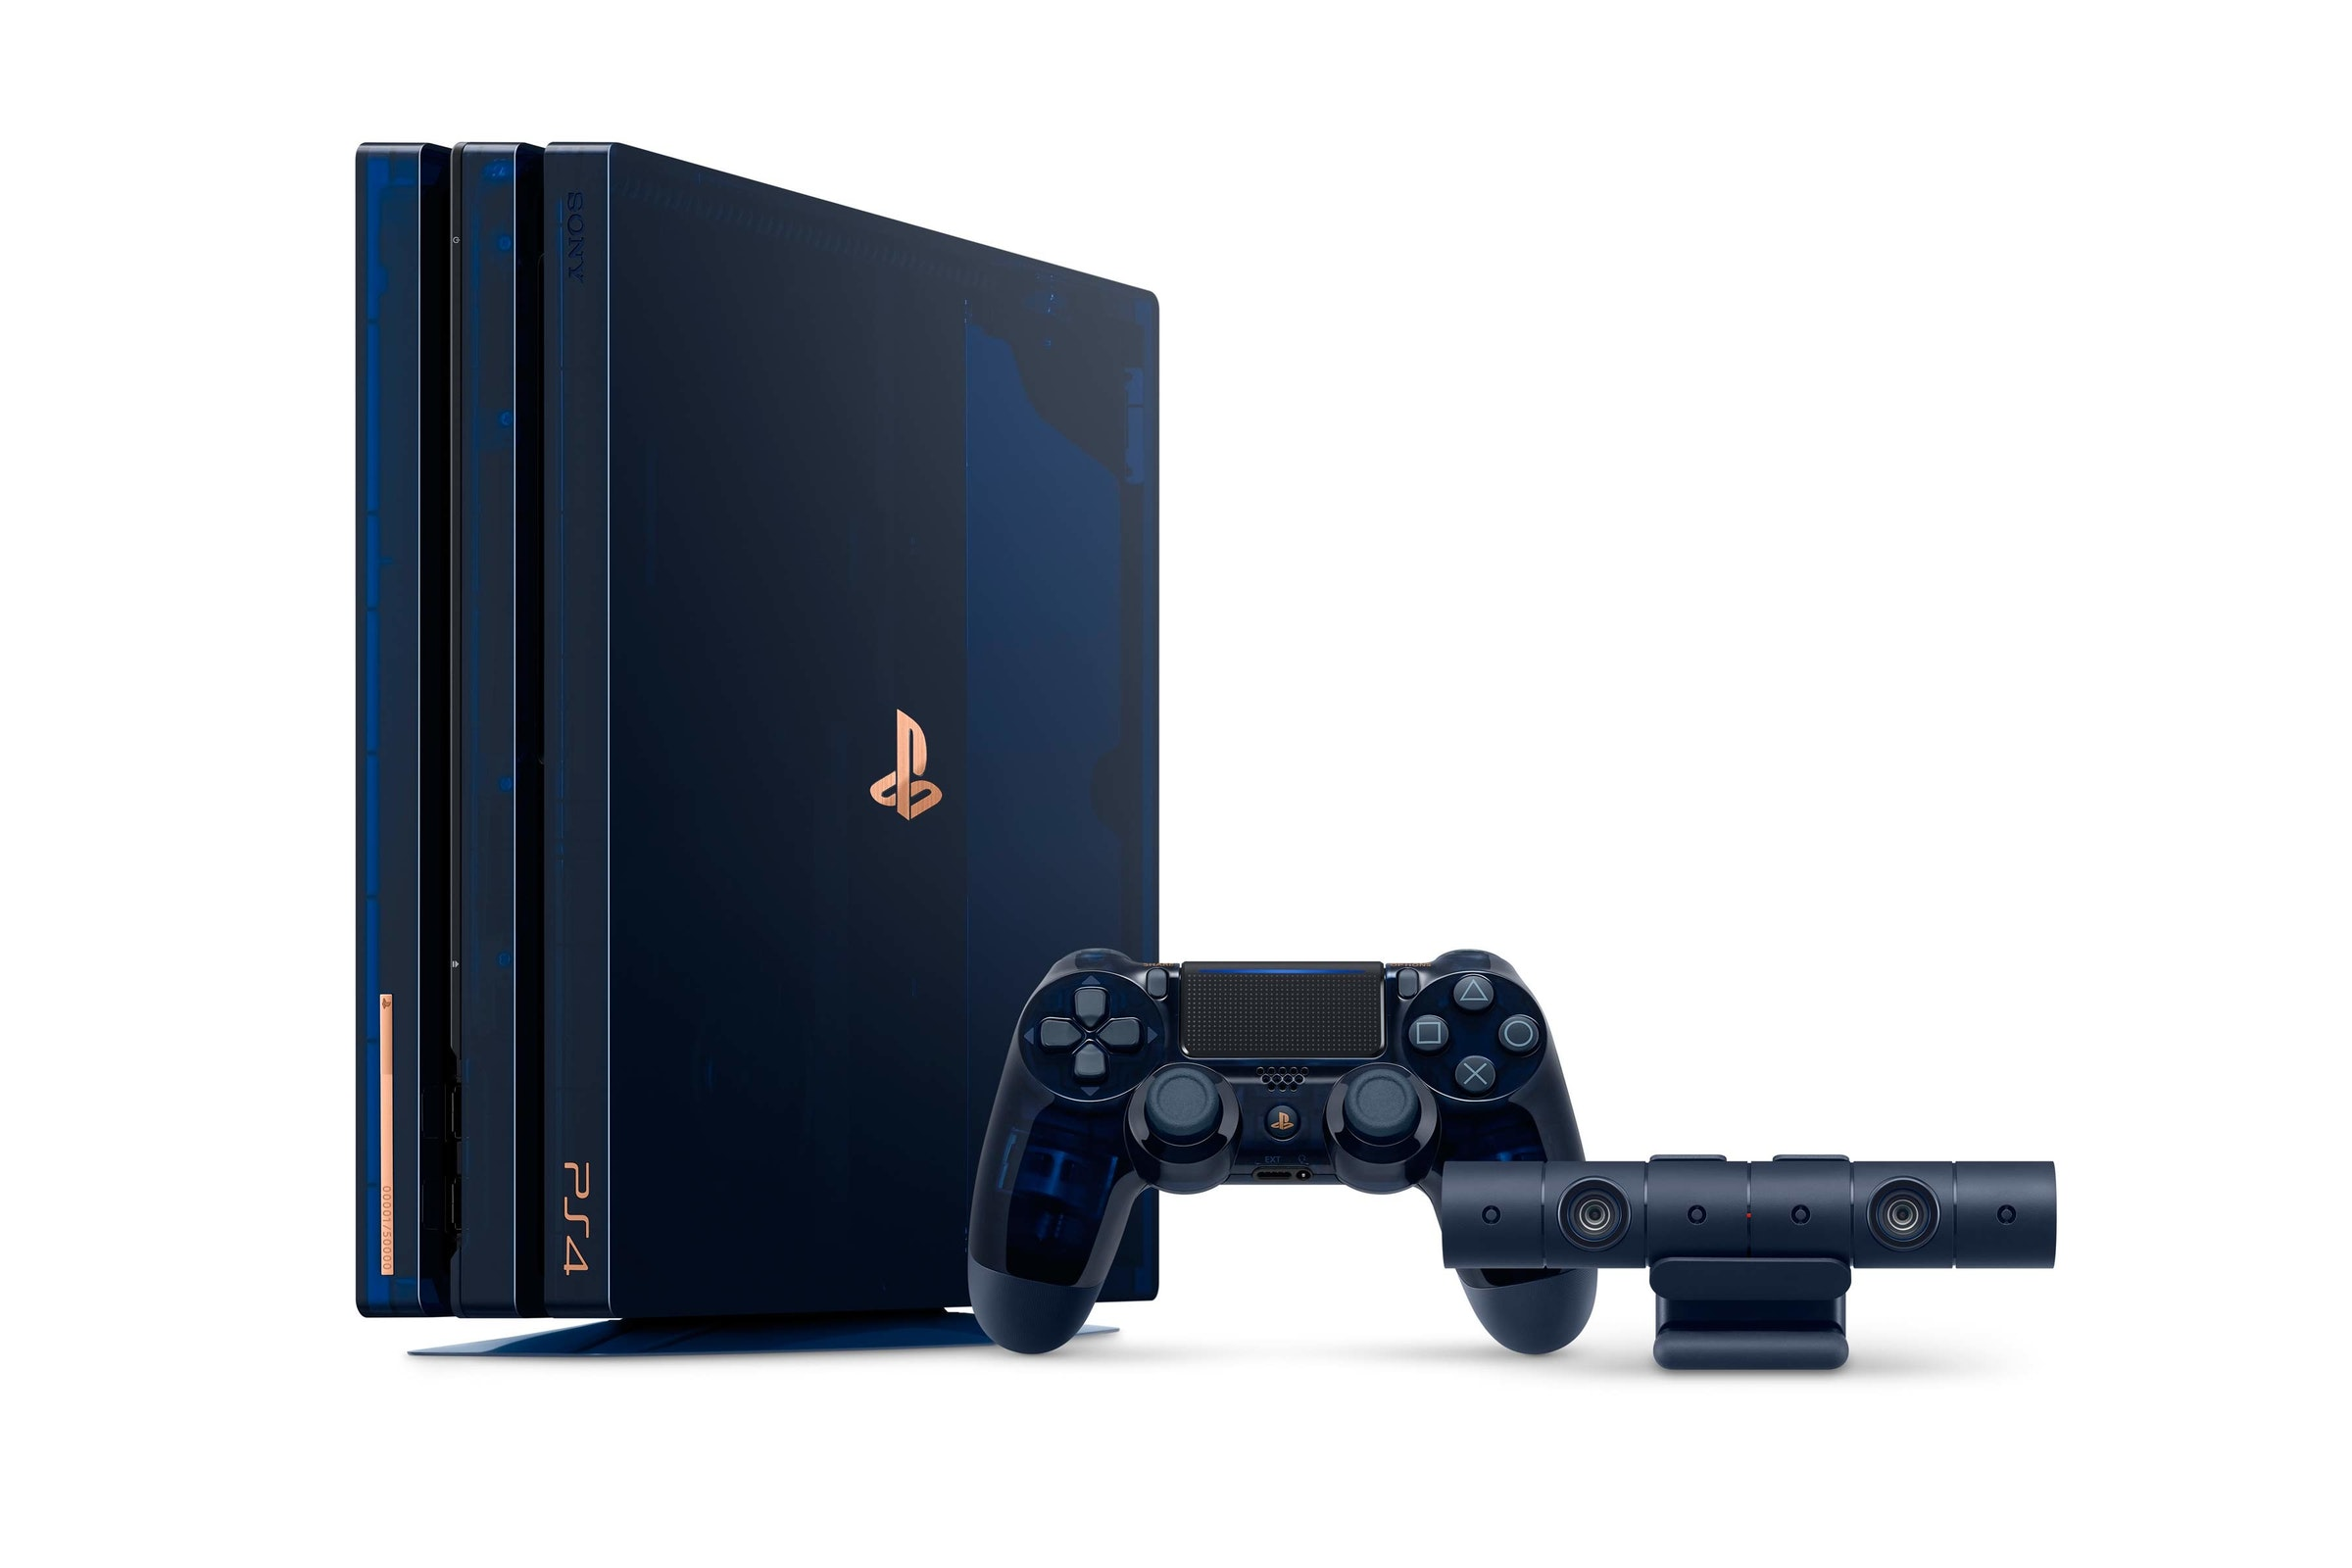 PlayStation 2, PlayStation, Sony PlayStation 4 Slim, PlayStation 3, Video Game Consoles, Video Games, Tri-e Multimedia Sdn Bhd, DualShock, DualShock 4, Game, multimedia, technology, product, electronic device, gadget, product, multimedia, display device, electronics, personal computer, video game console